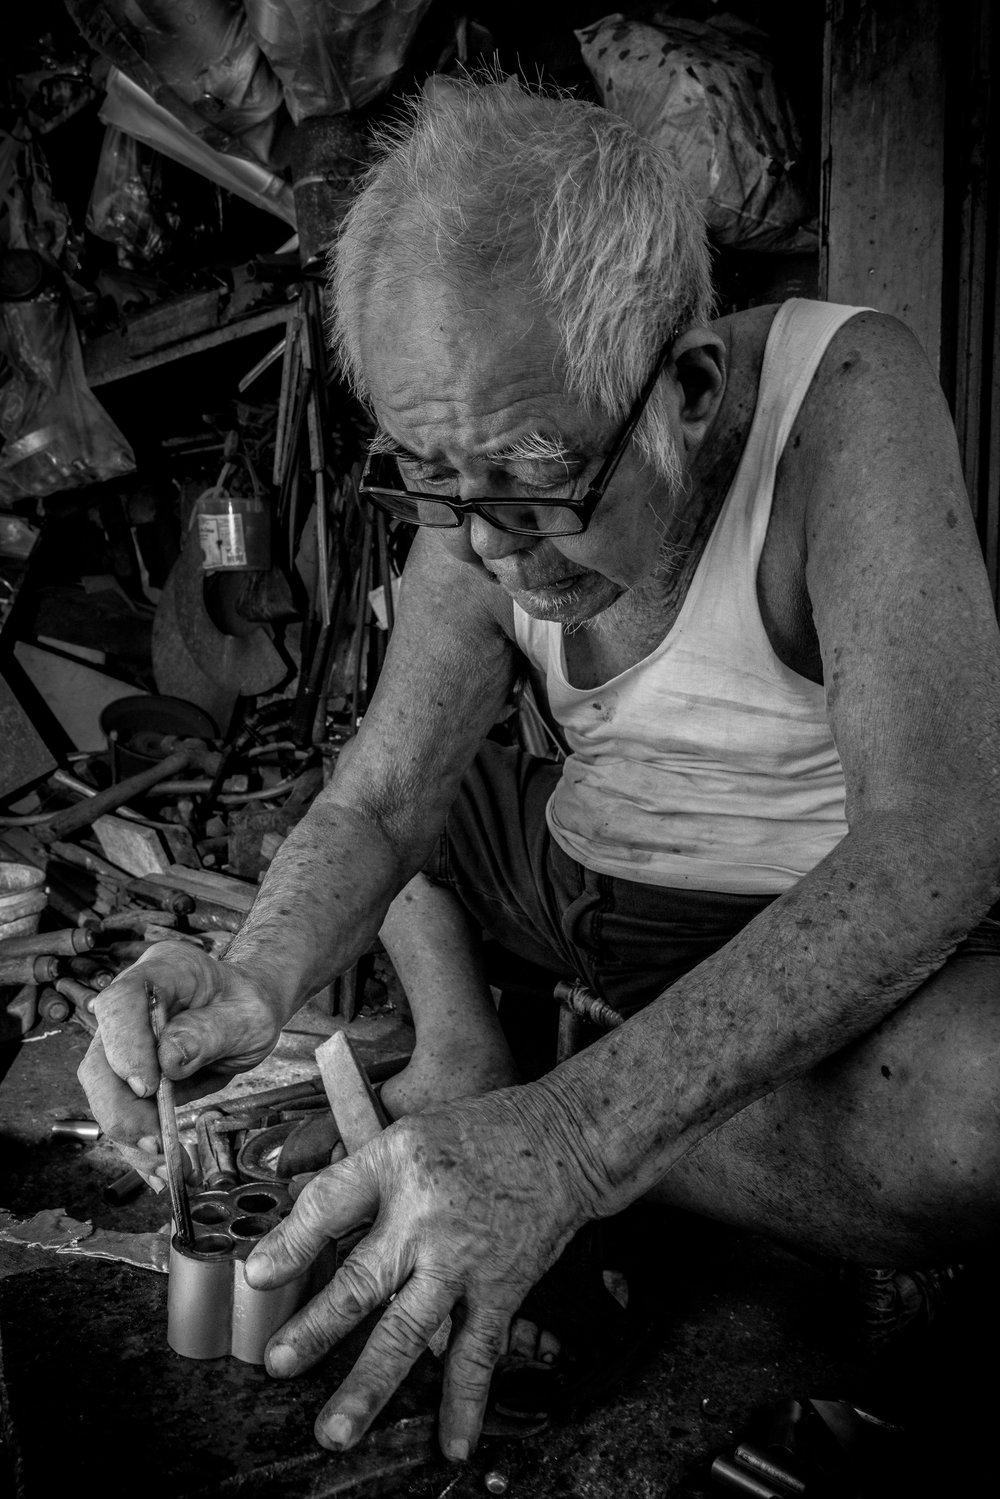 Old man making kitchenware in Kuching, Malaysia